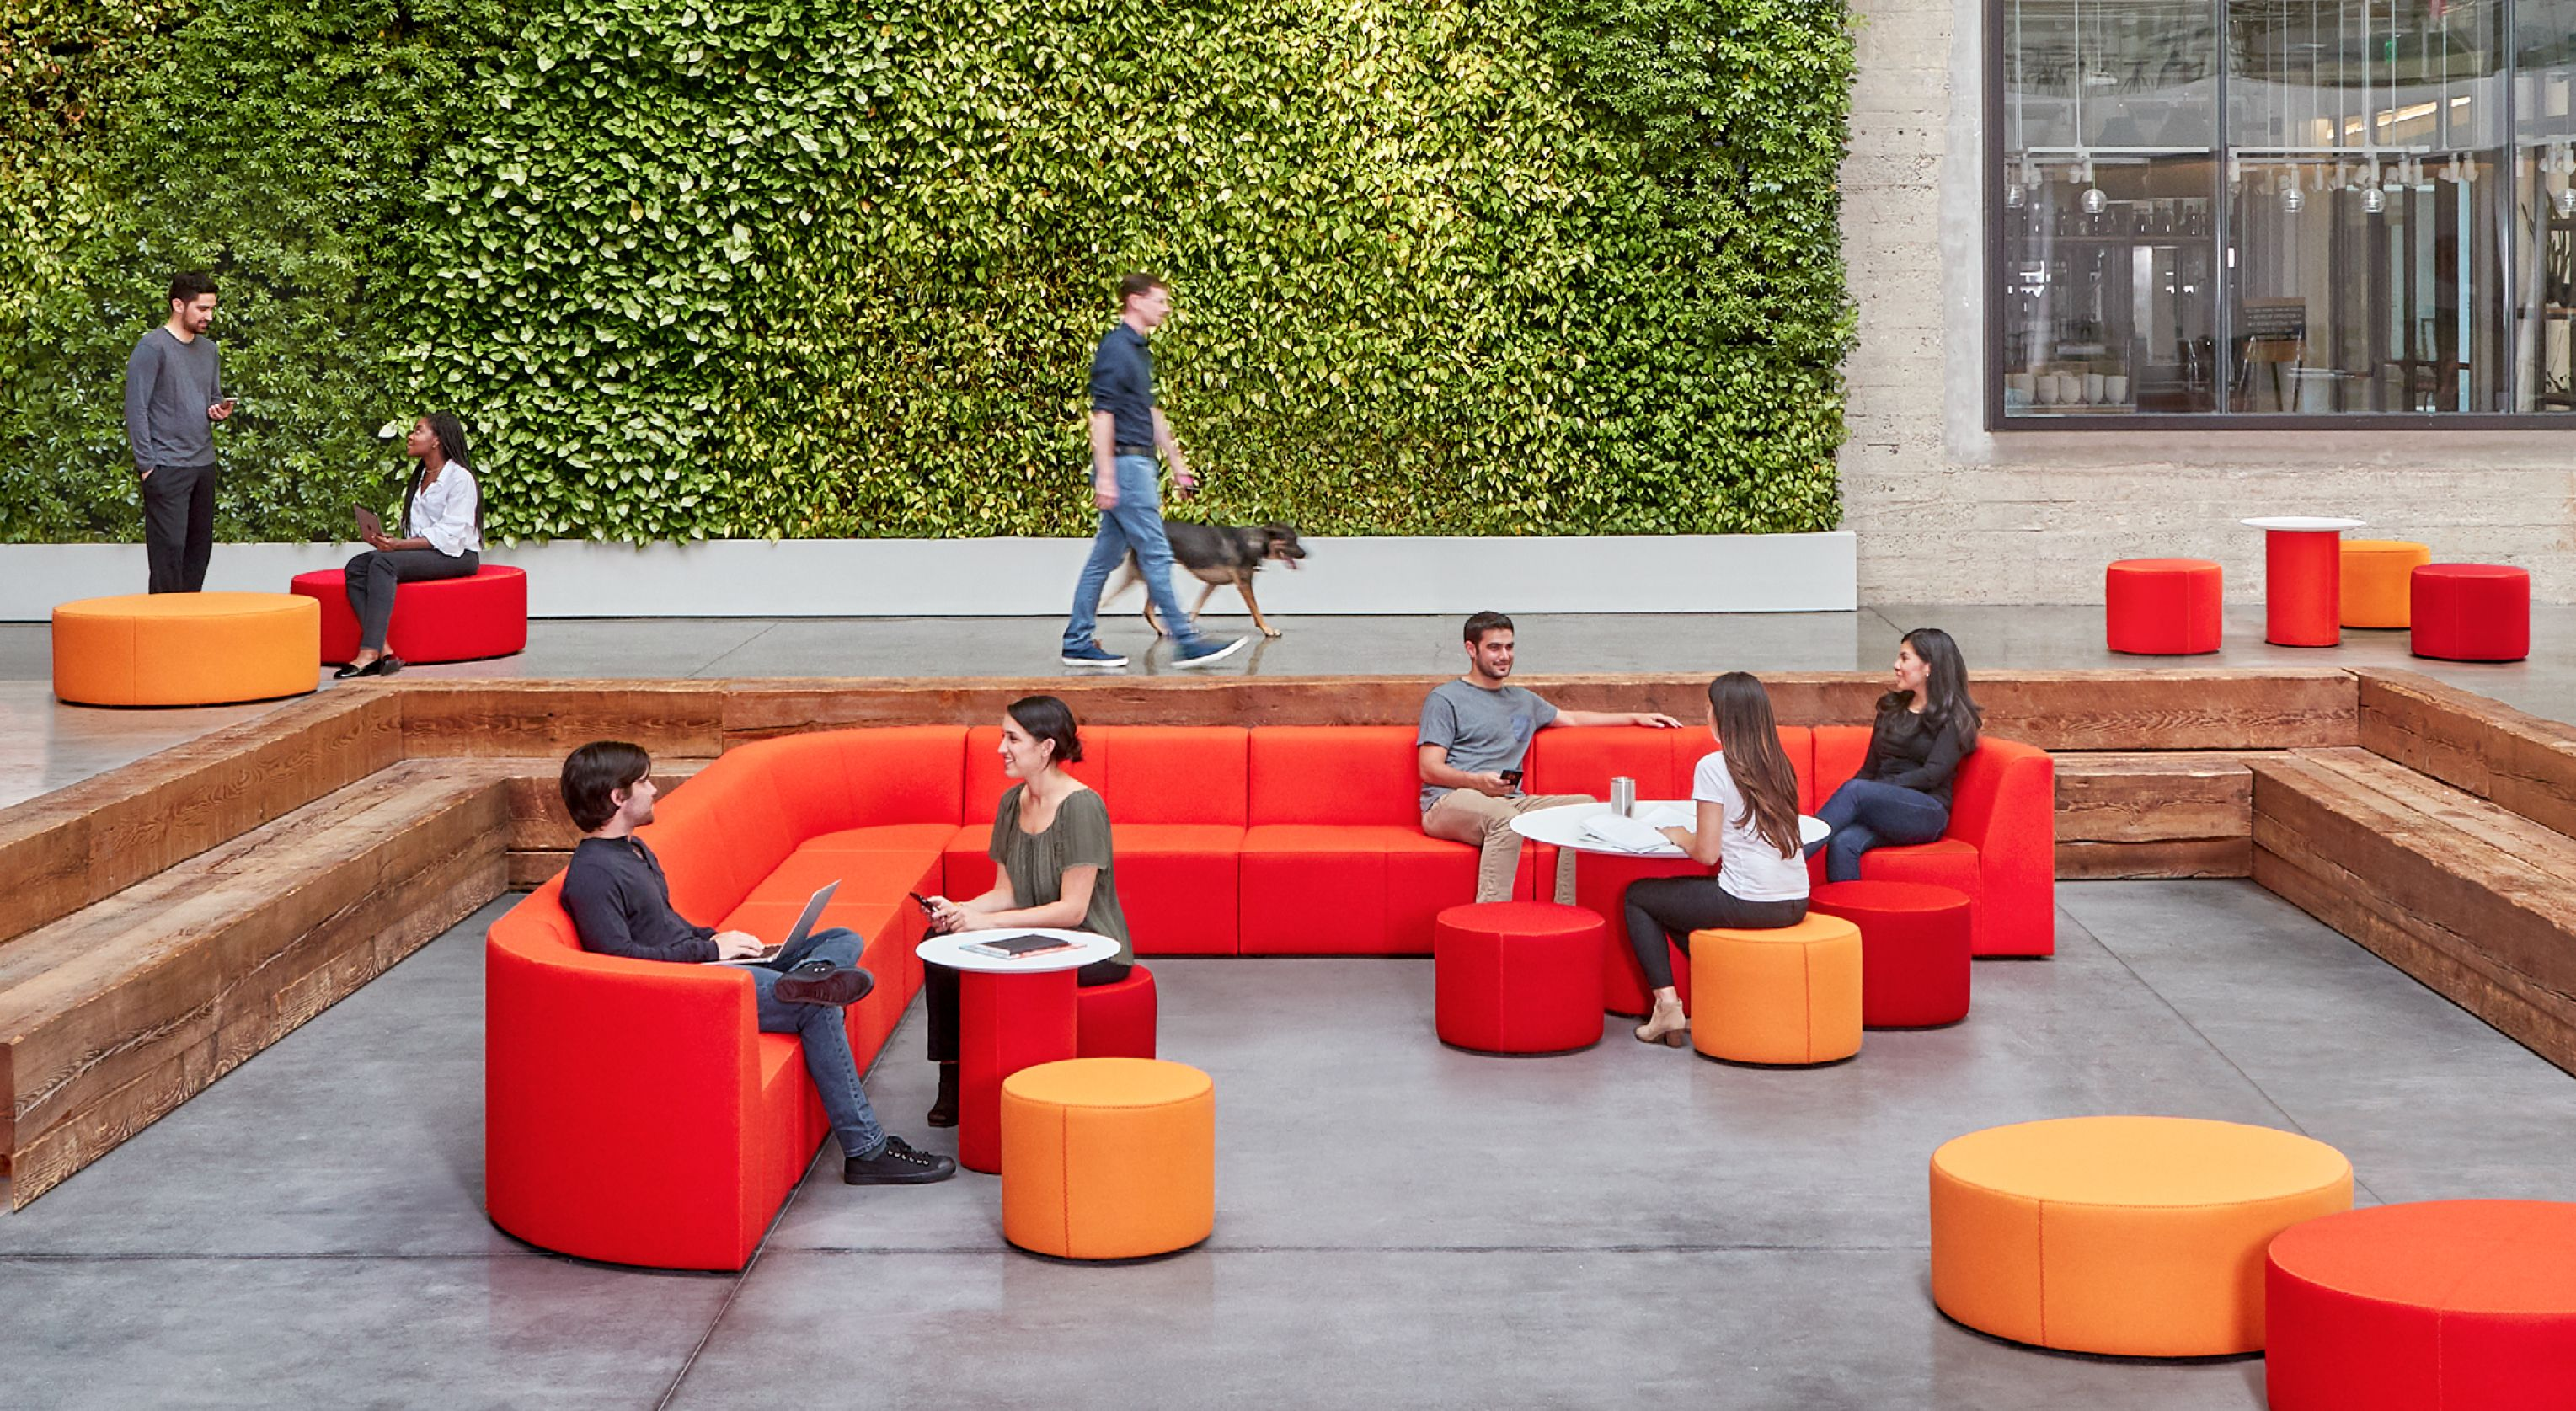 The power to choose: Modular furniture in the modern workplace